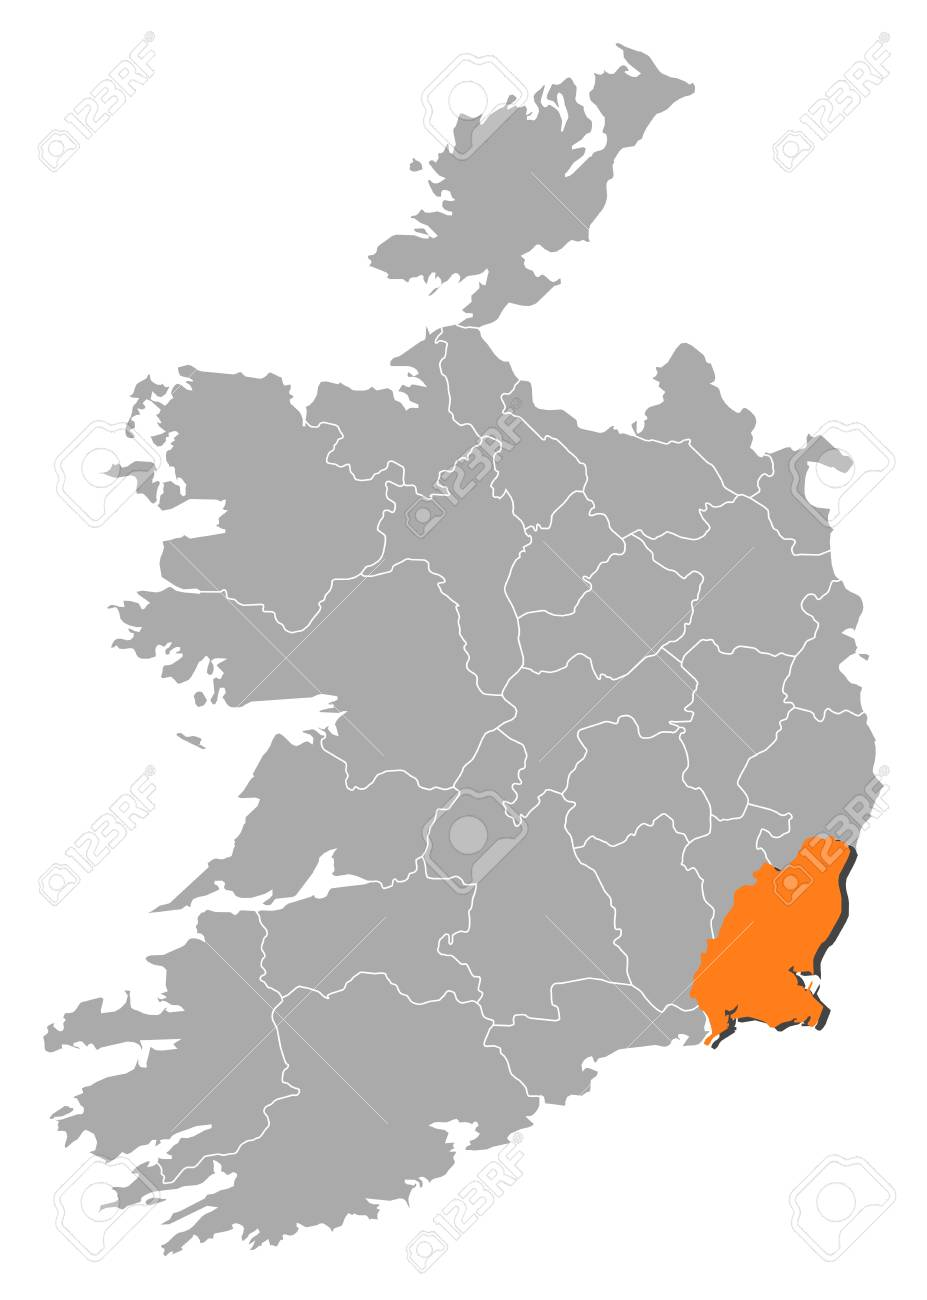 Wexford Map Of Ireland.Map Of Ireland With The Provinces Wexford Is Highlighted By